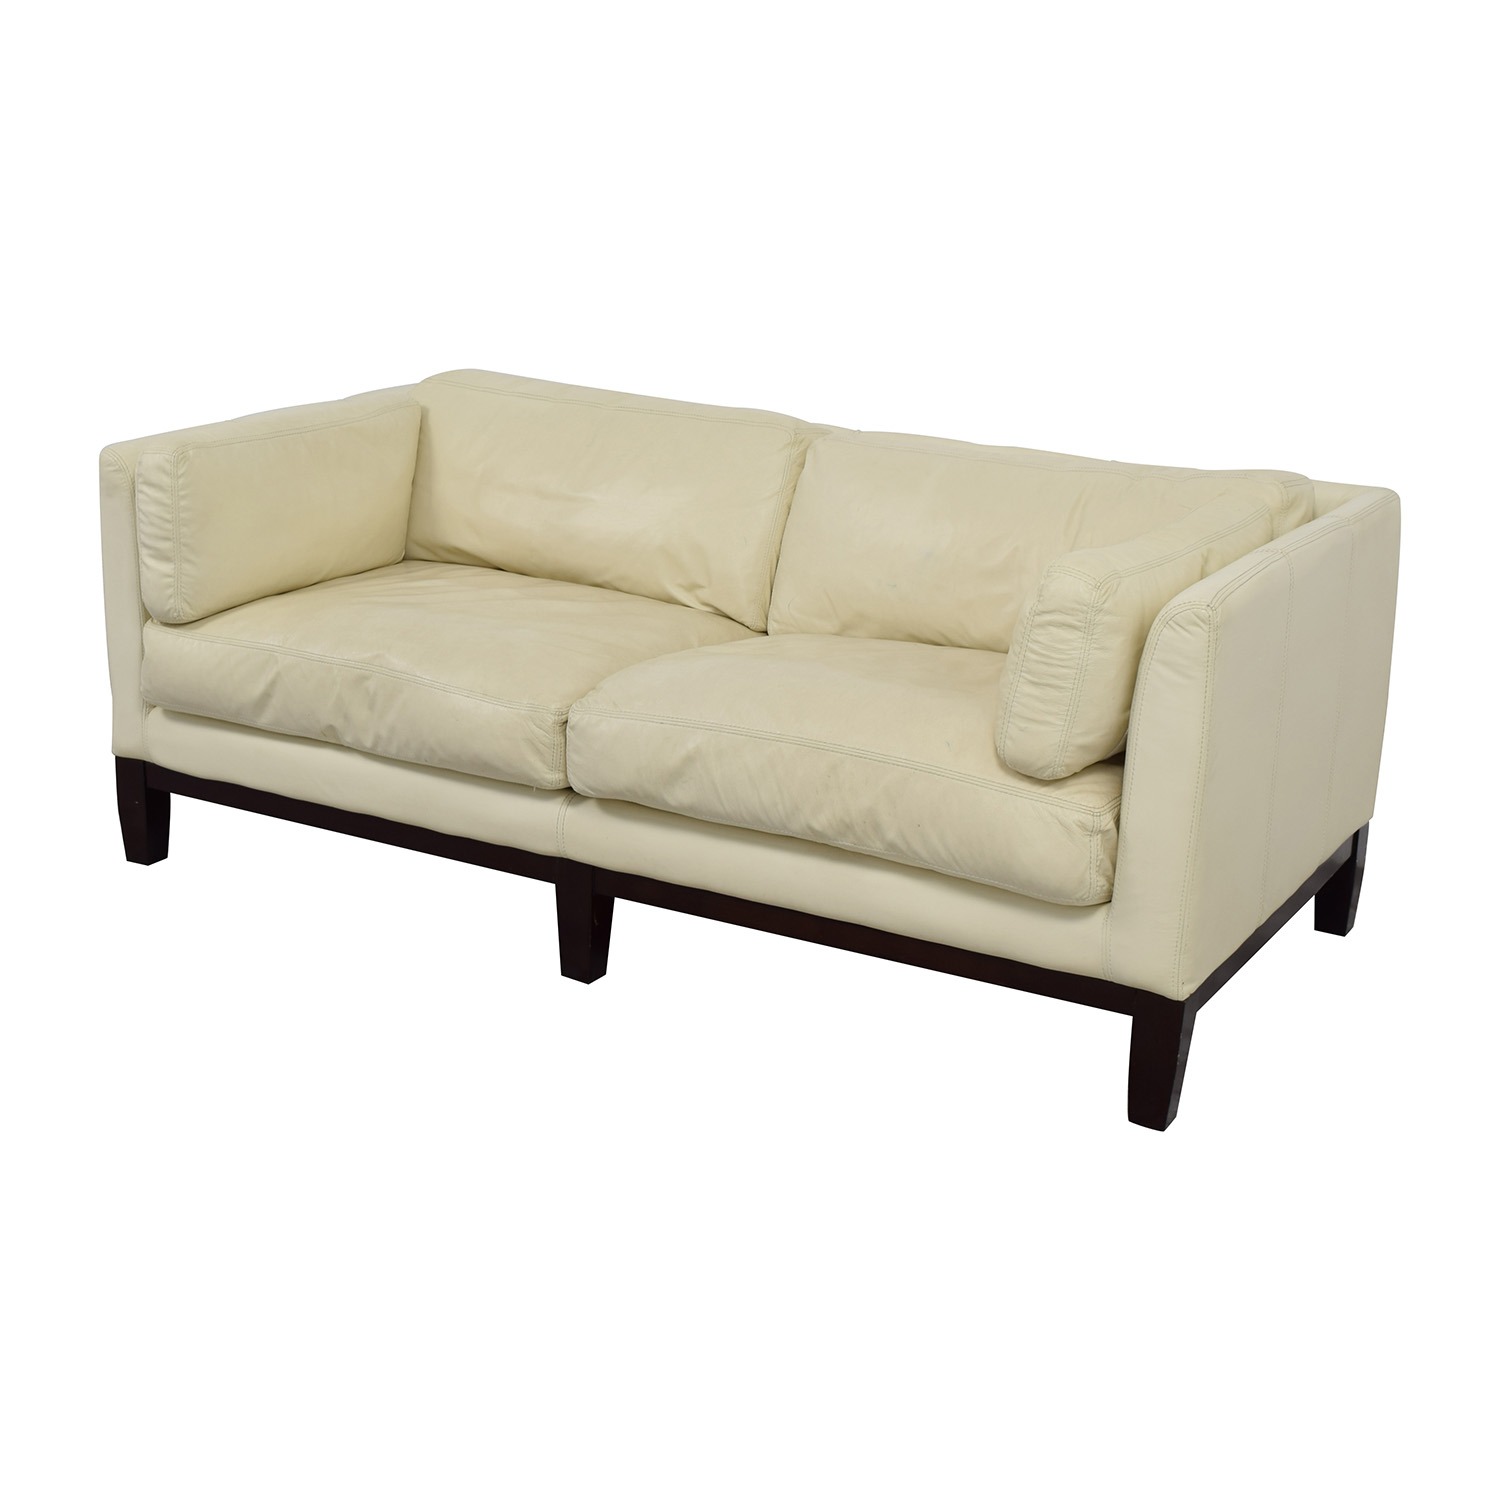 white leather sectional sofa with ottoman green chair covers off rita modern